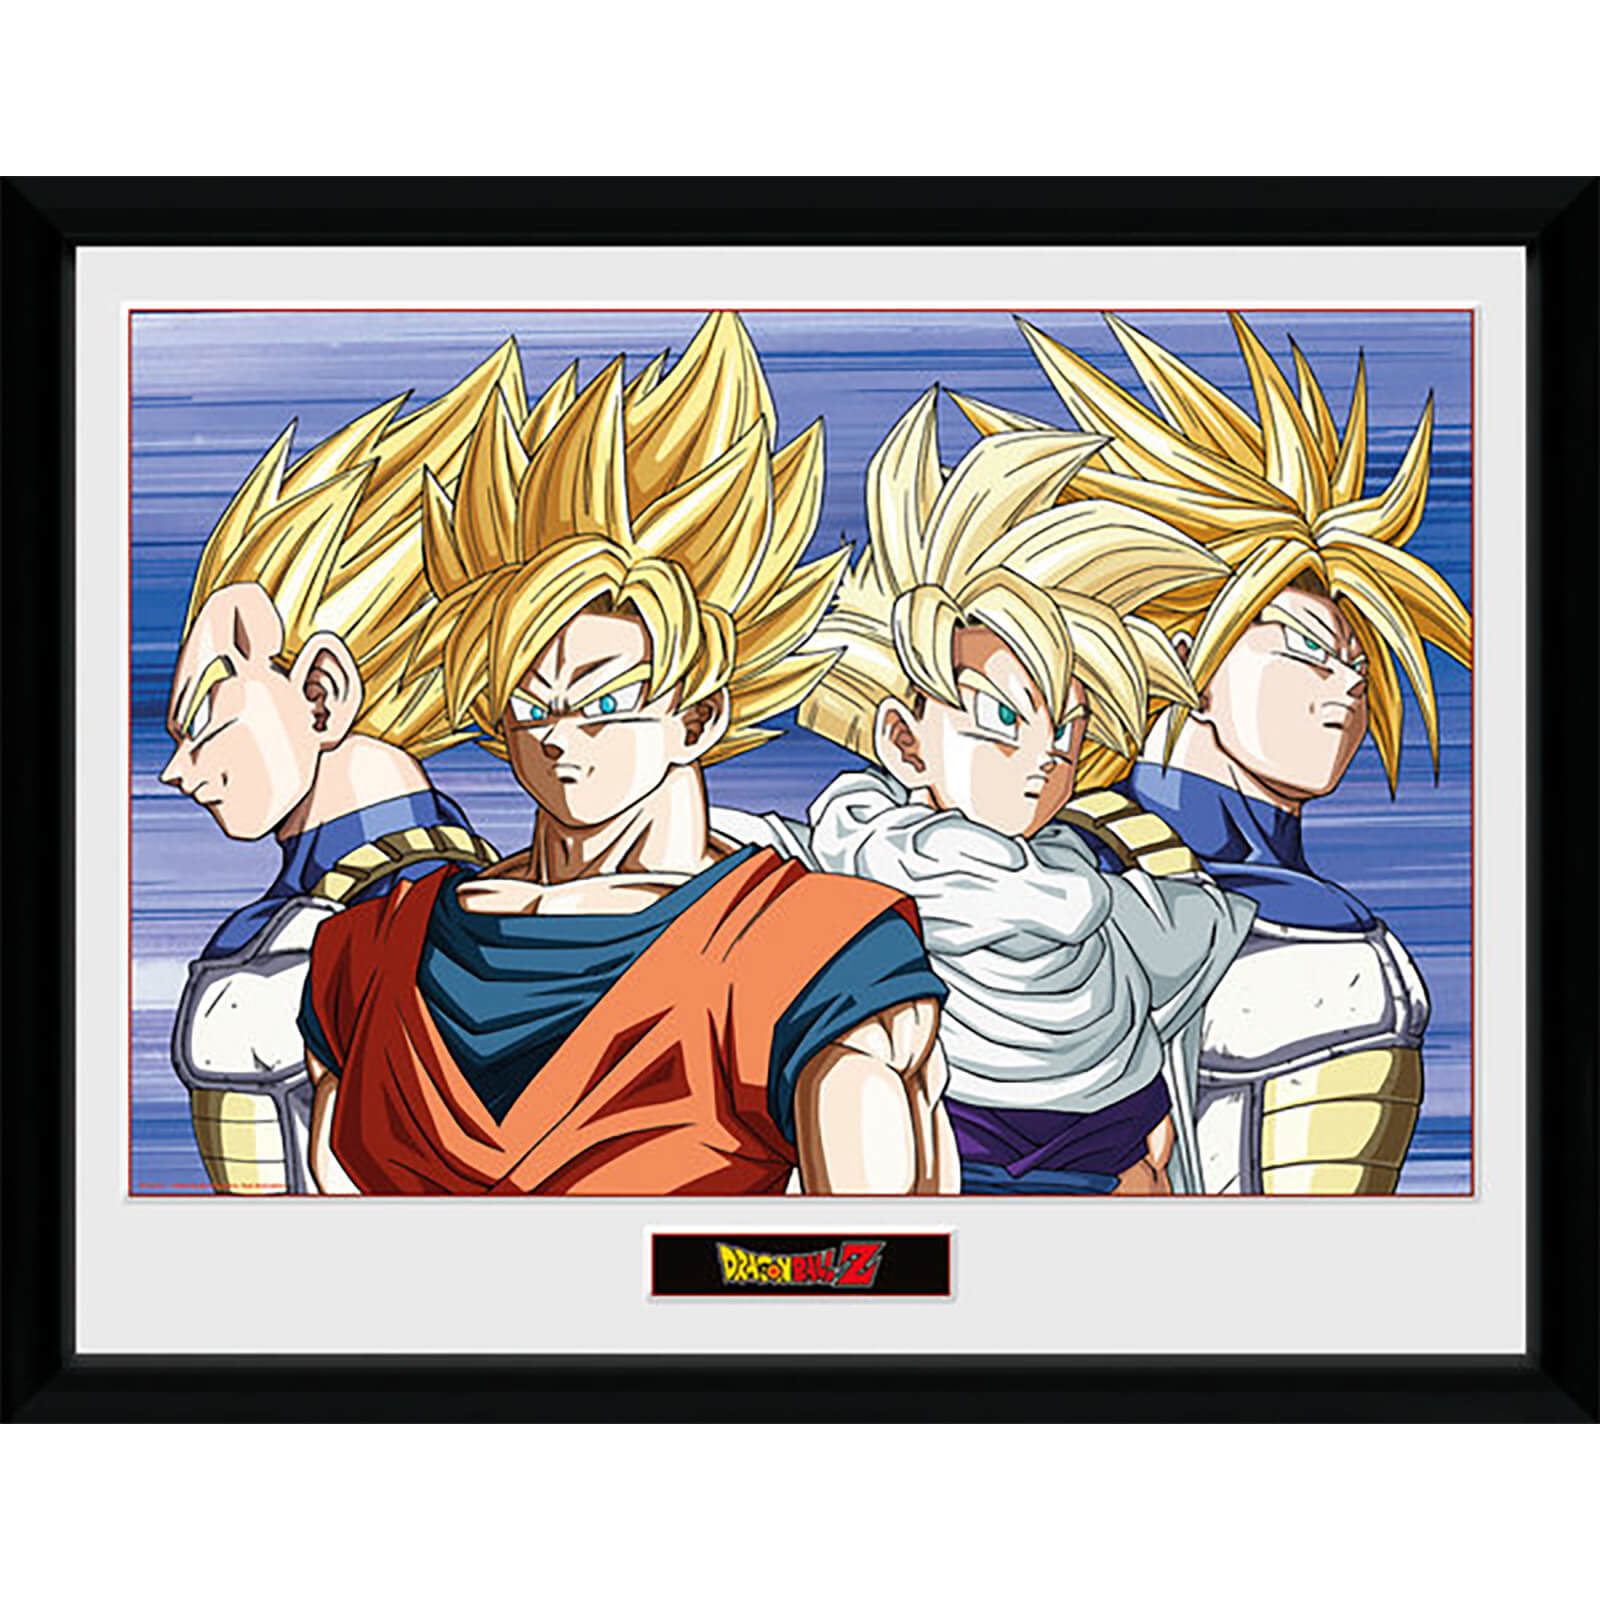 Dragon Ball Z Group - 16 x 12 Inches Framed Photograph